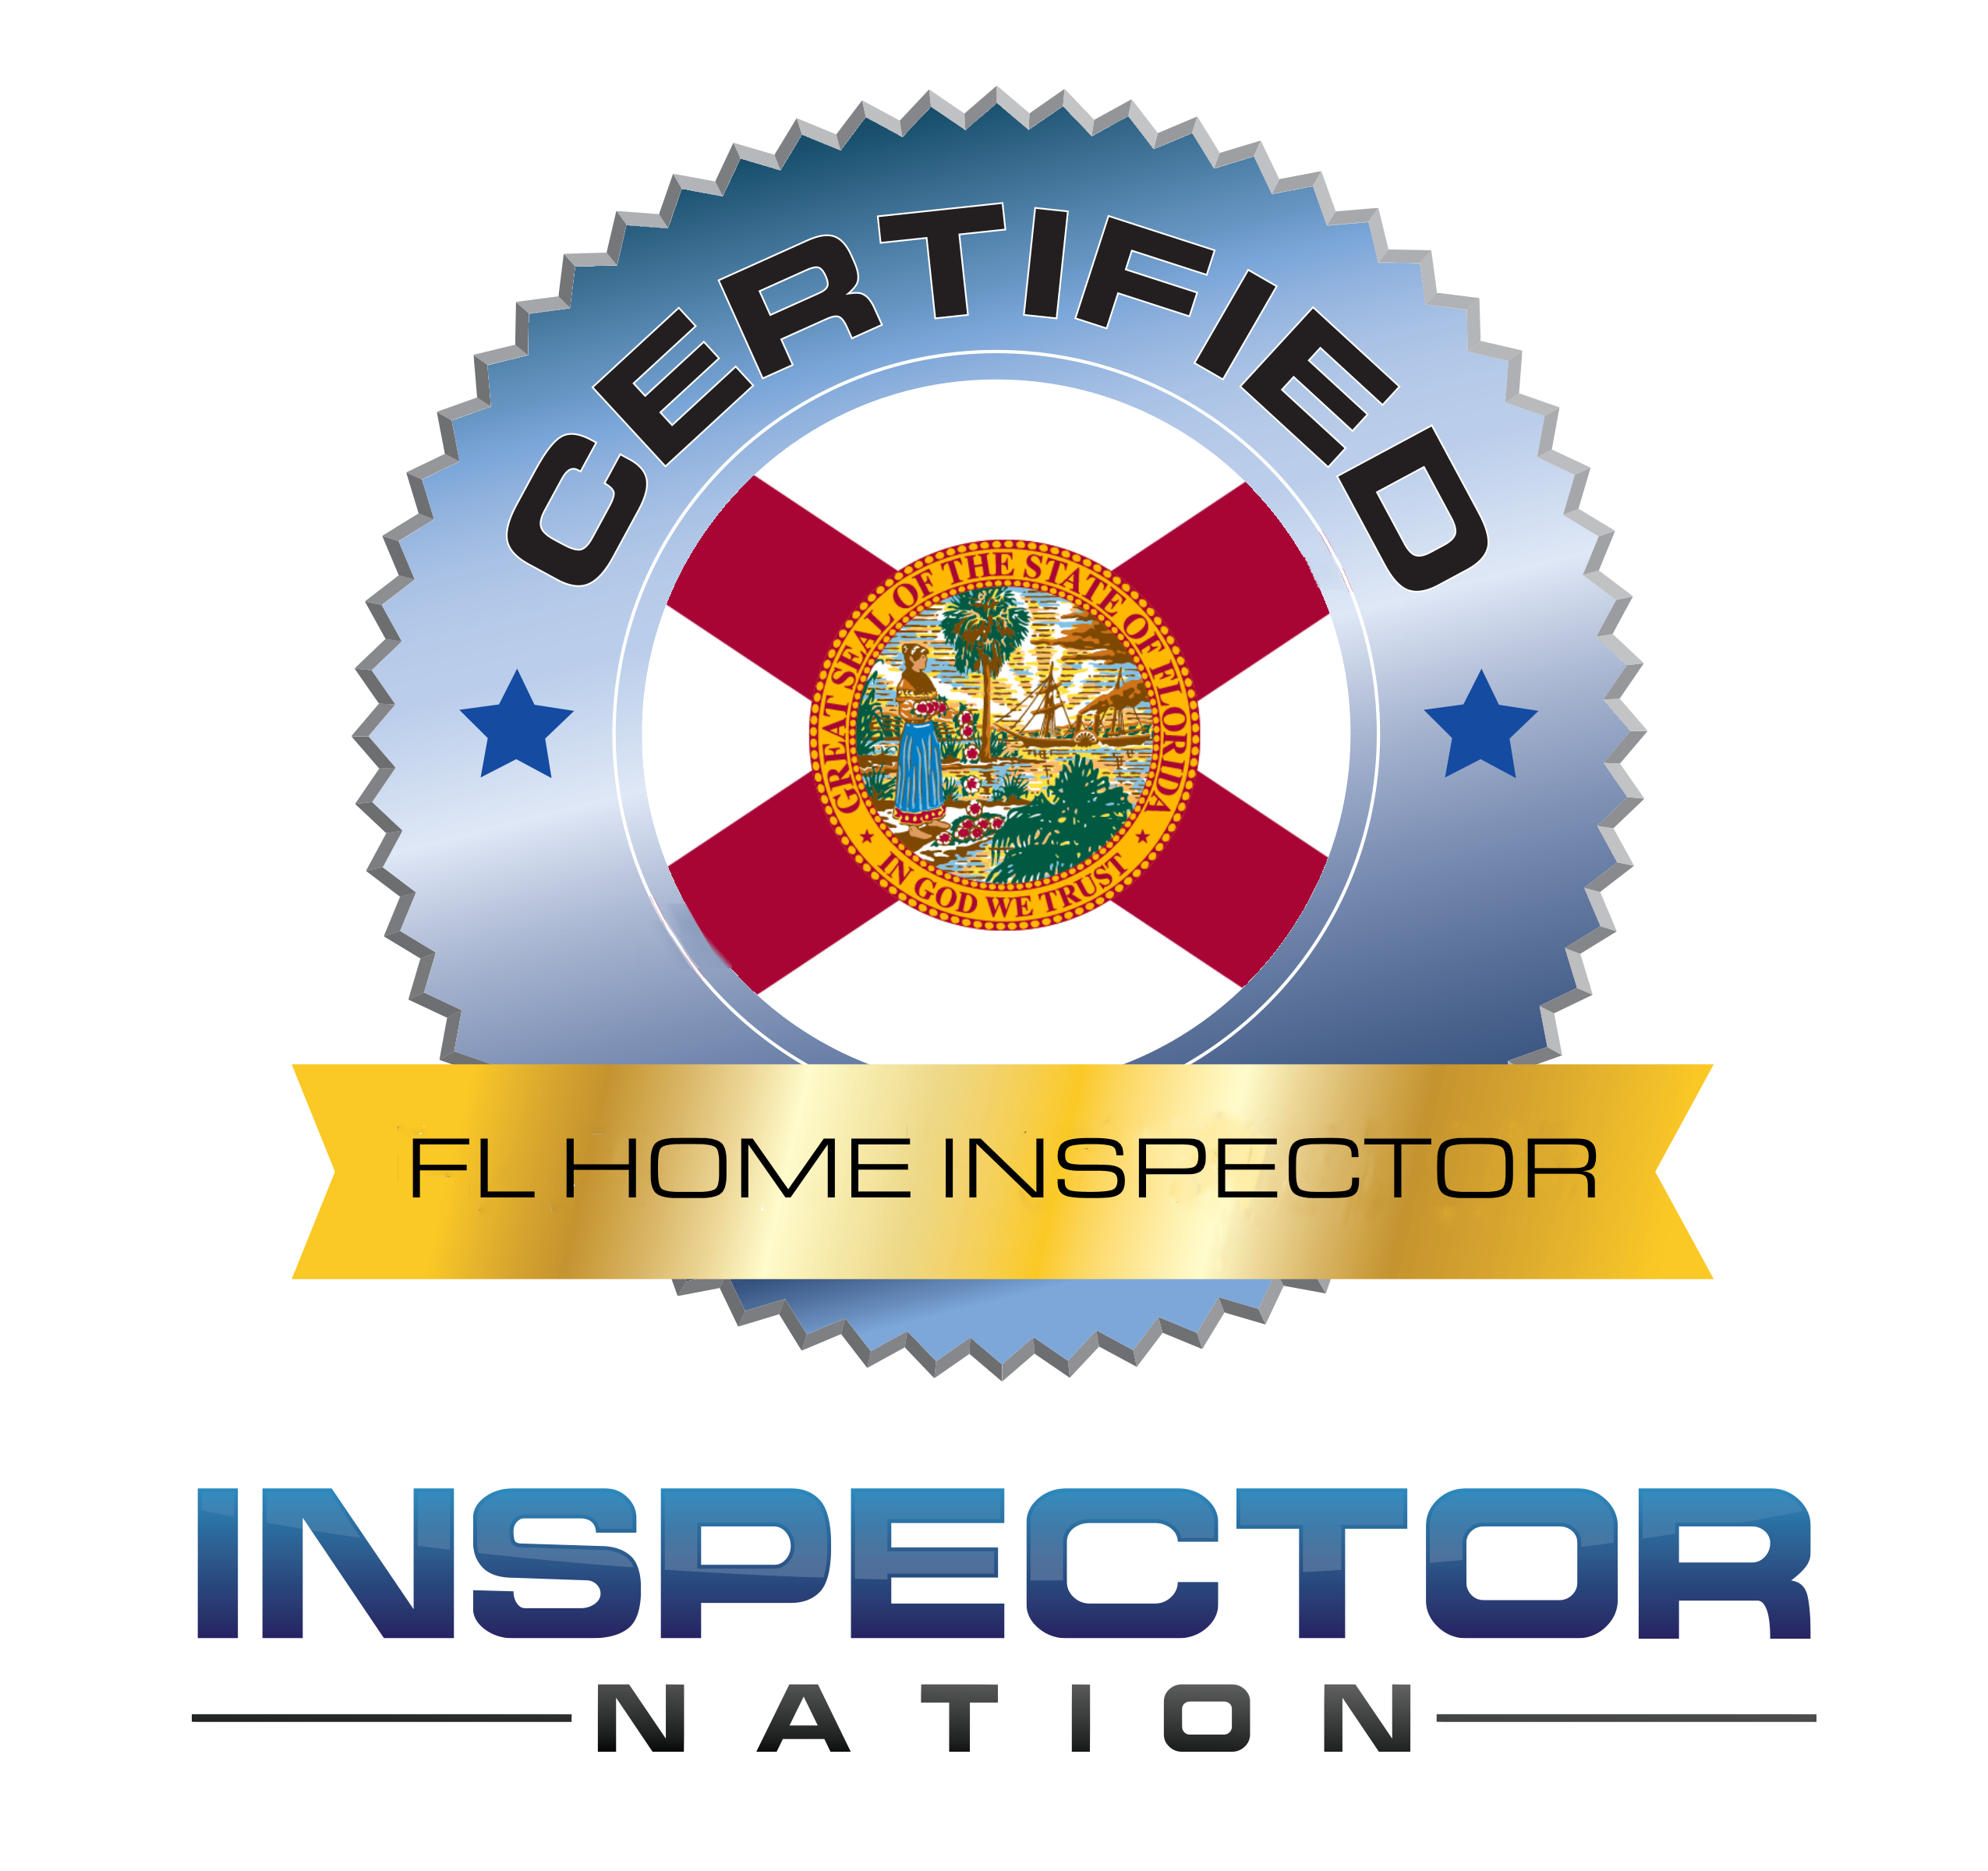 inspector nation certified home inspector florida fl